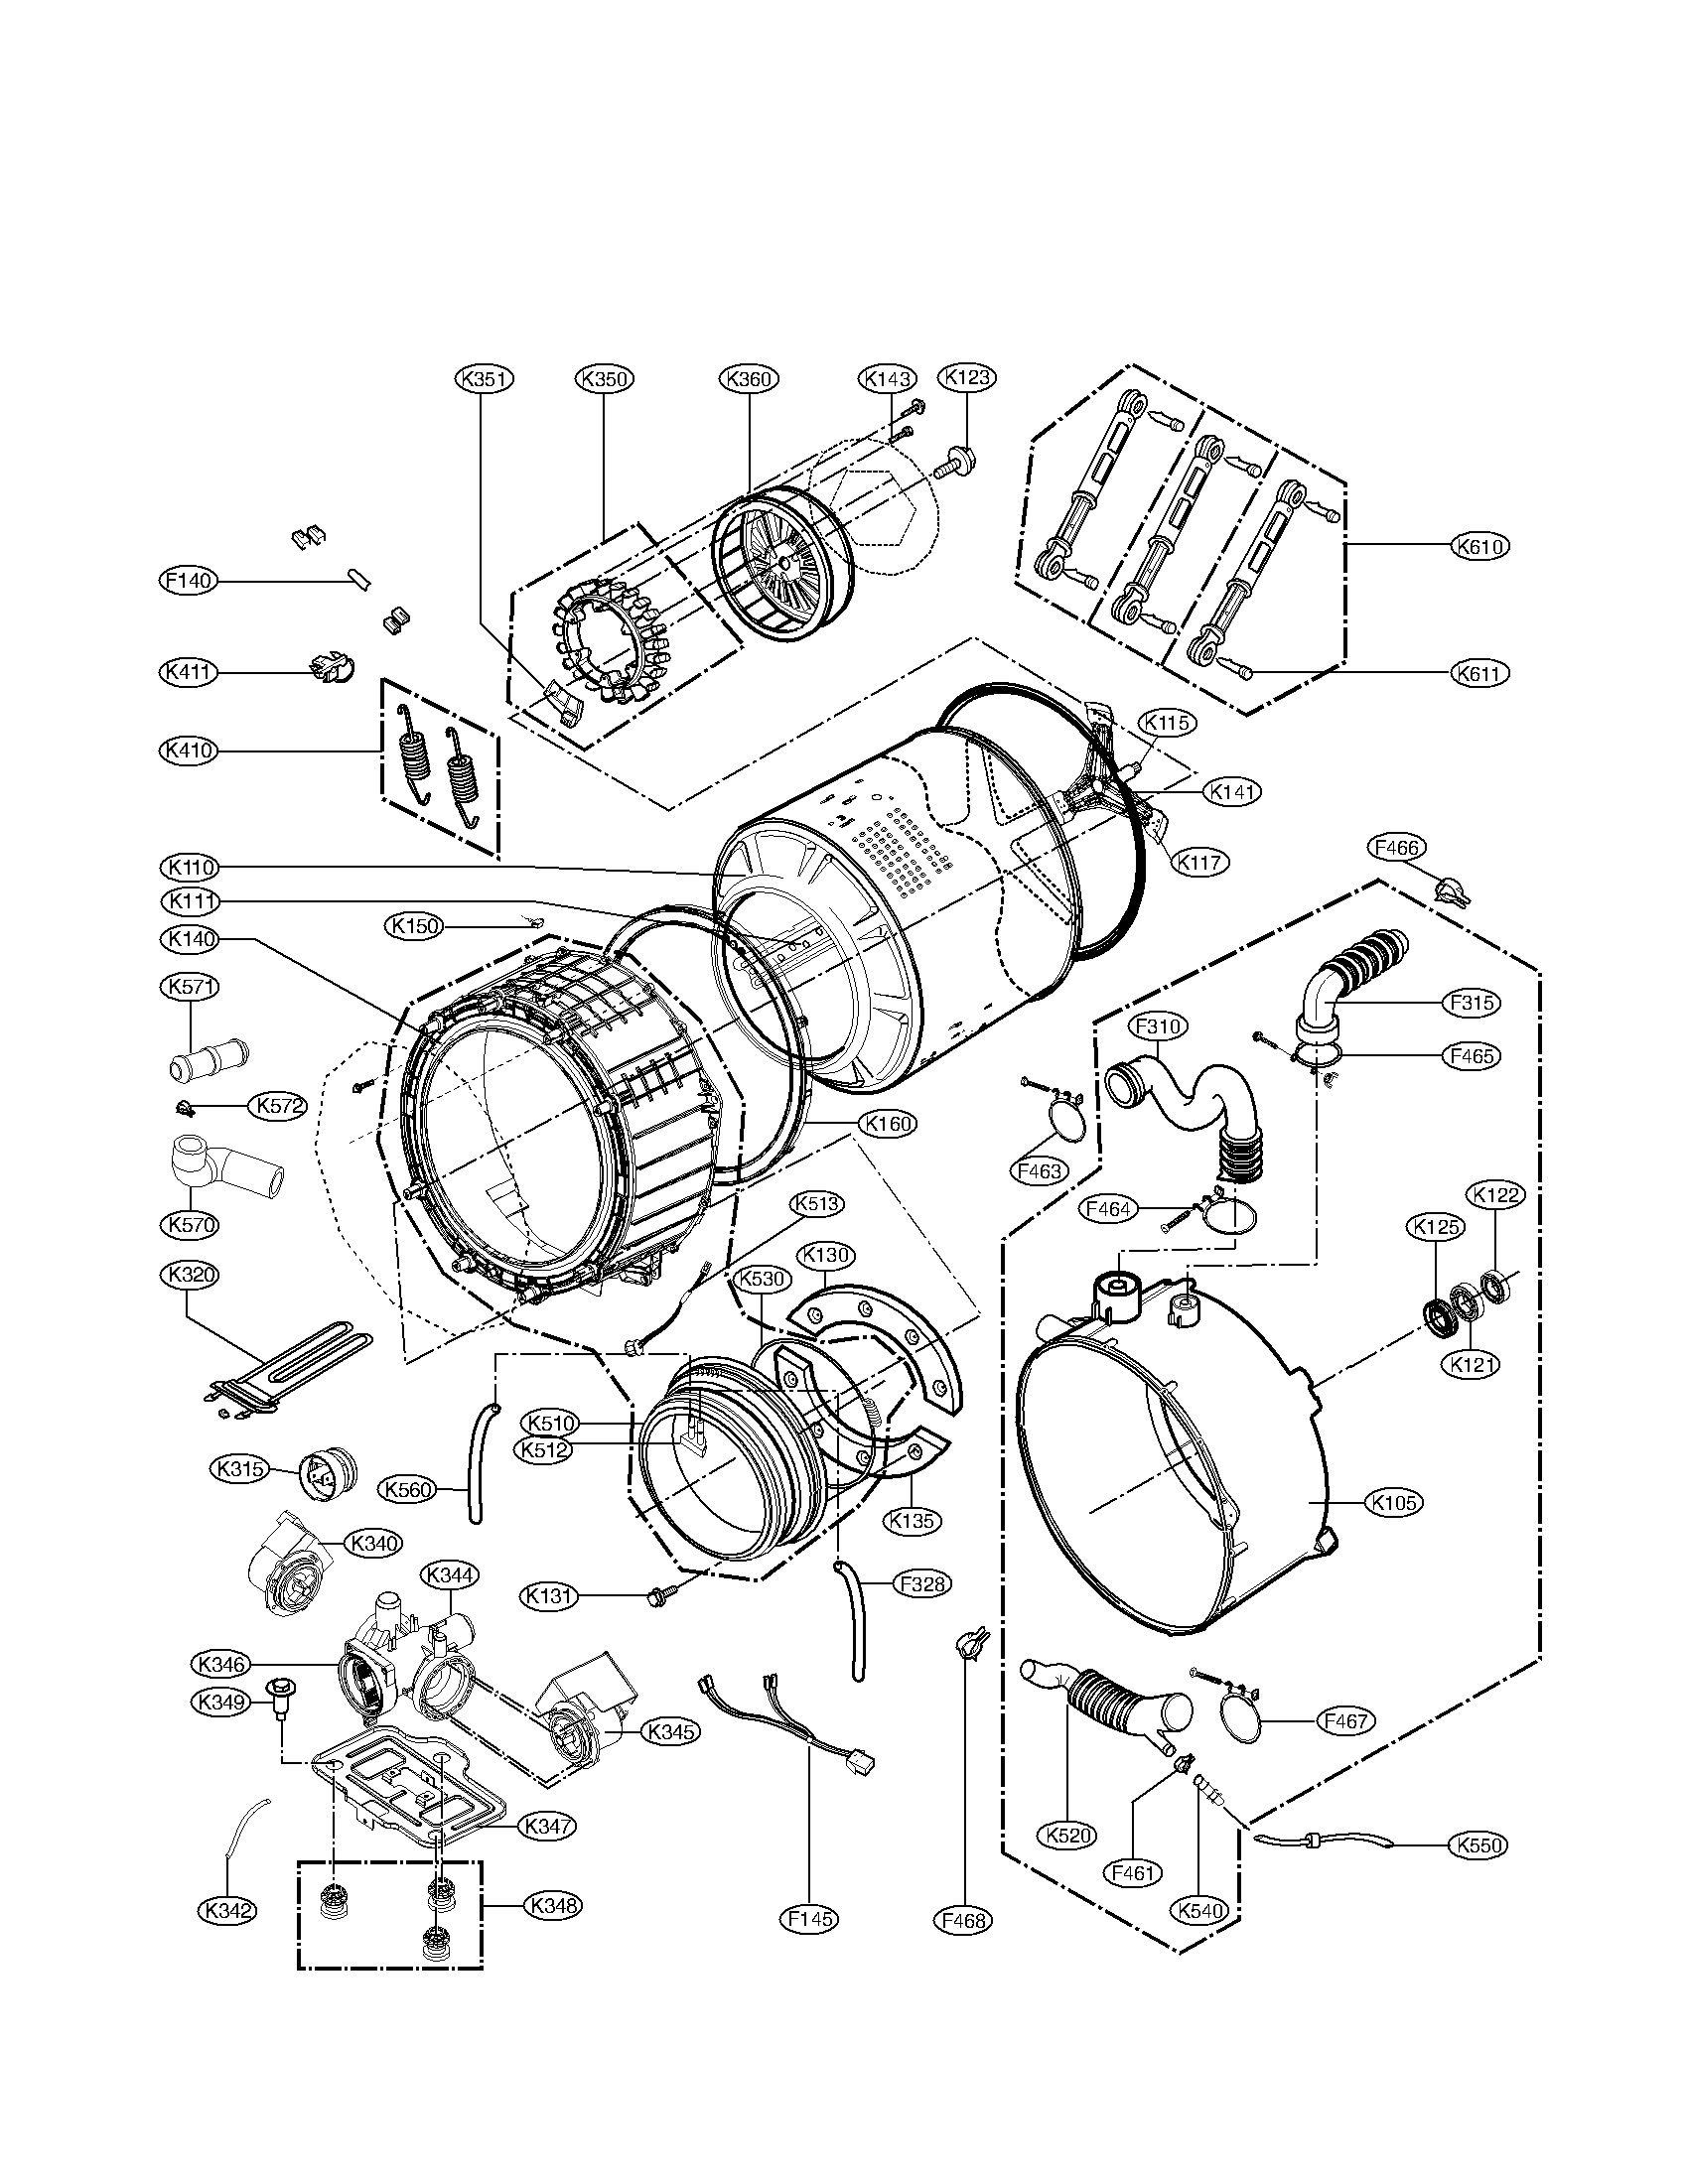 diagram and parts list for kenmore elite washerparts model wiring kenmore elite washer parts diagram moreover kenmore elite he3t washer [ 1700 x 2200 Pixel ]